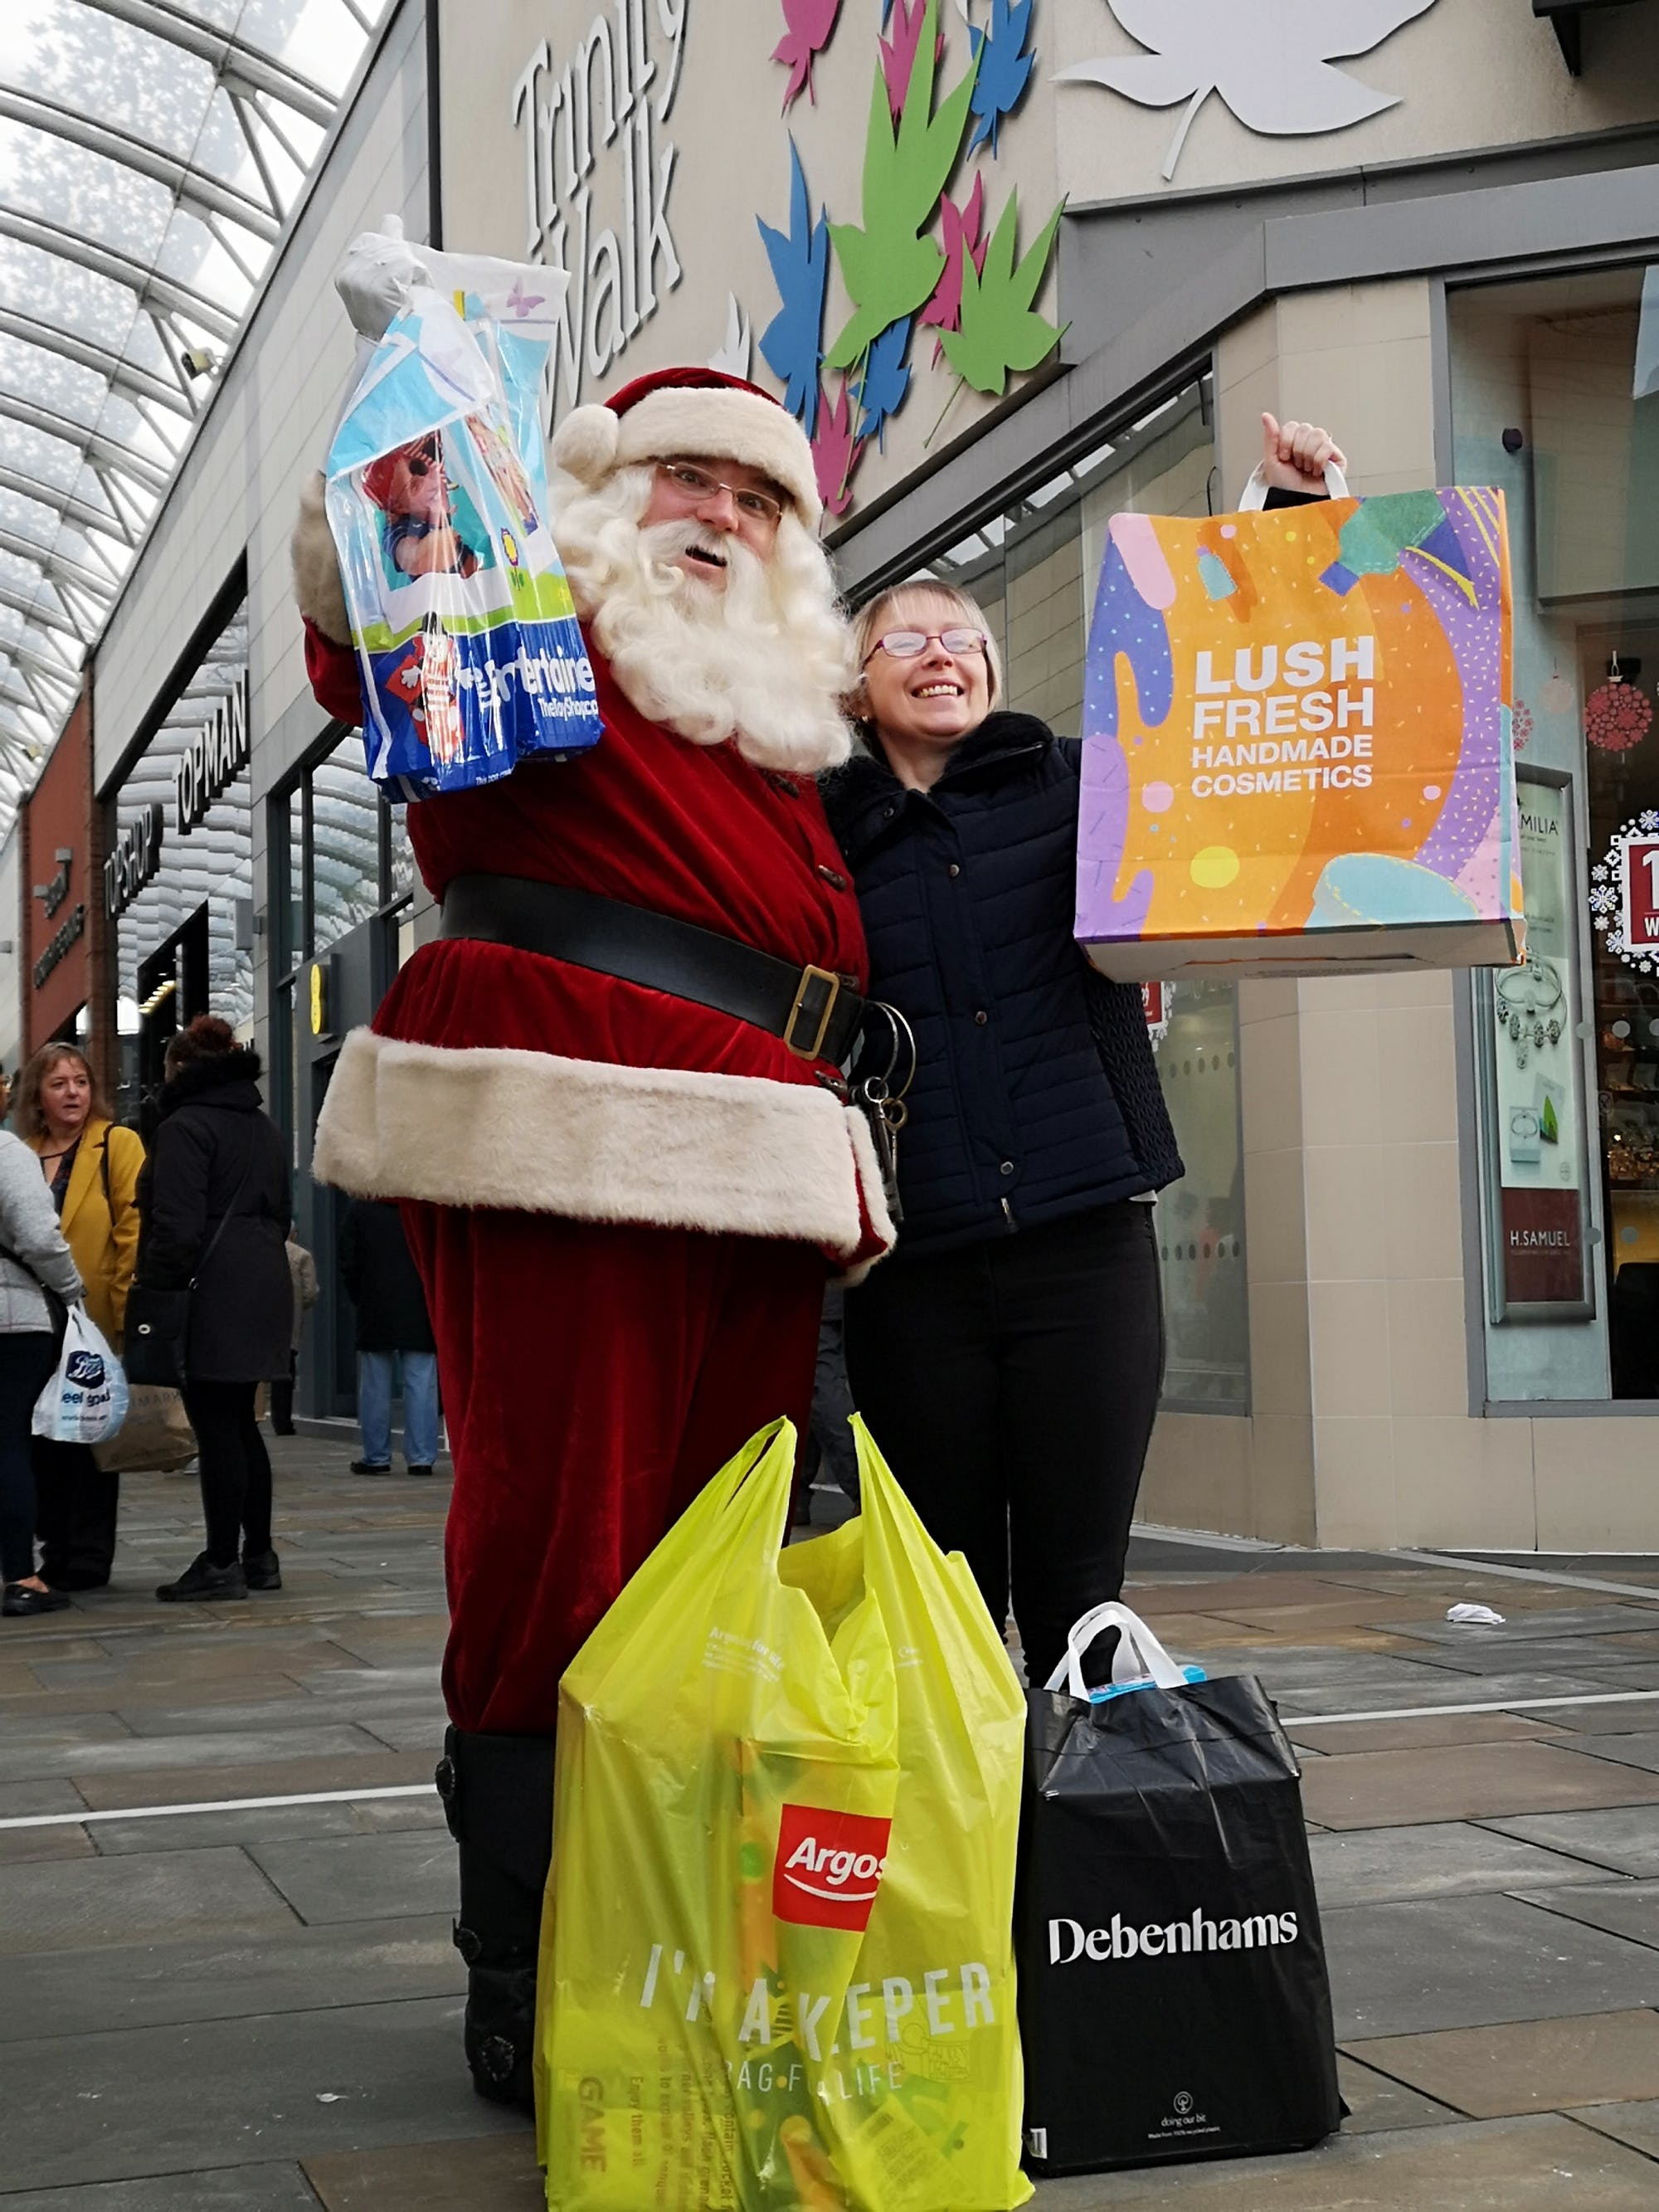 Another Santa Cash shopping trip and winner